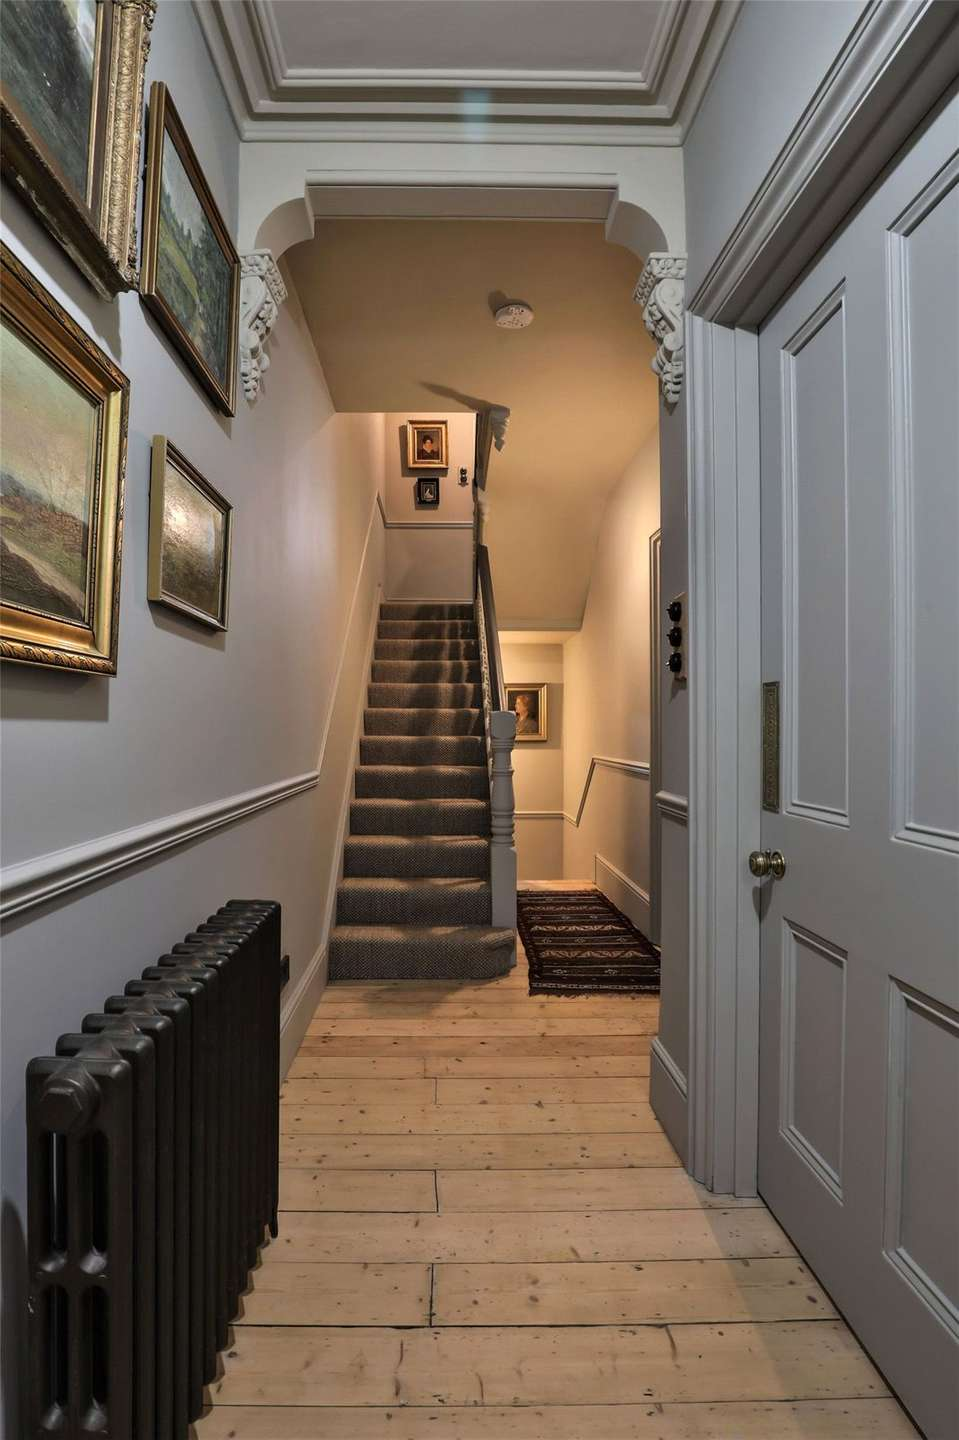 An elegantly-proportioned Victorian house on Woodstock Road in Oxford - Image Gallery 02 - Hallway